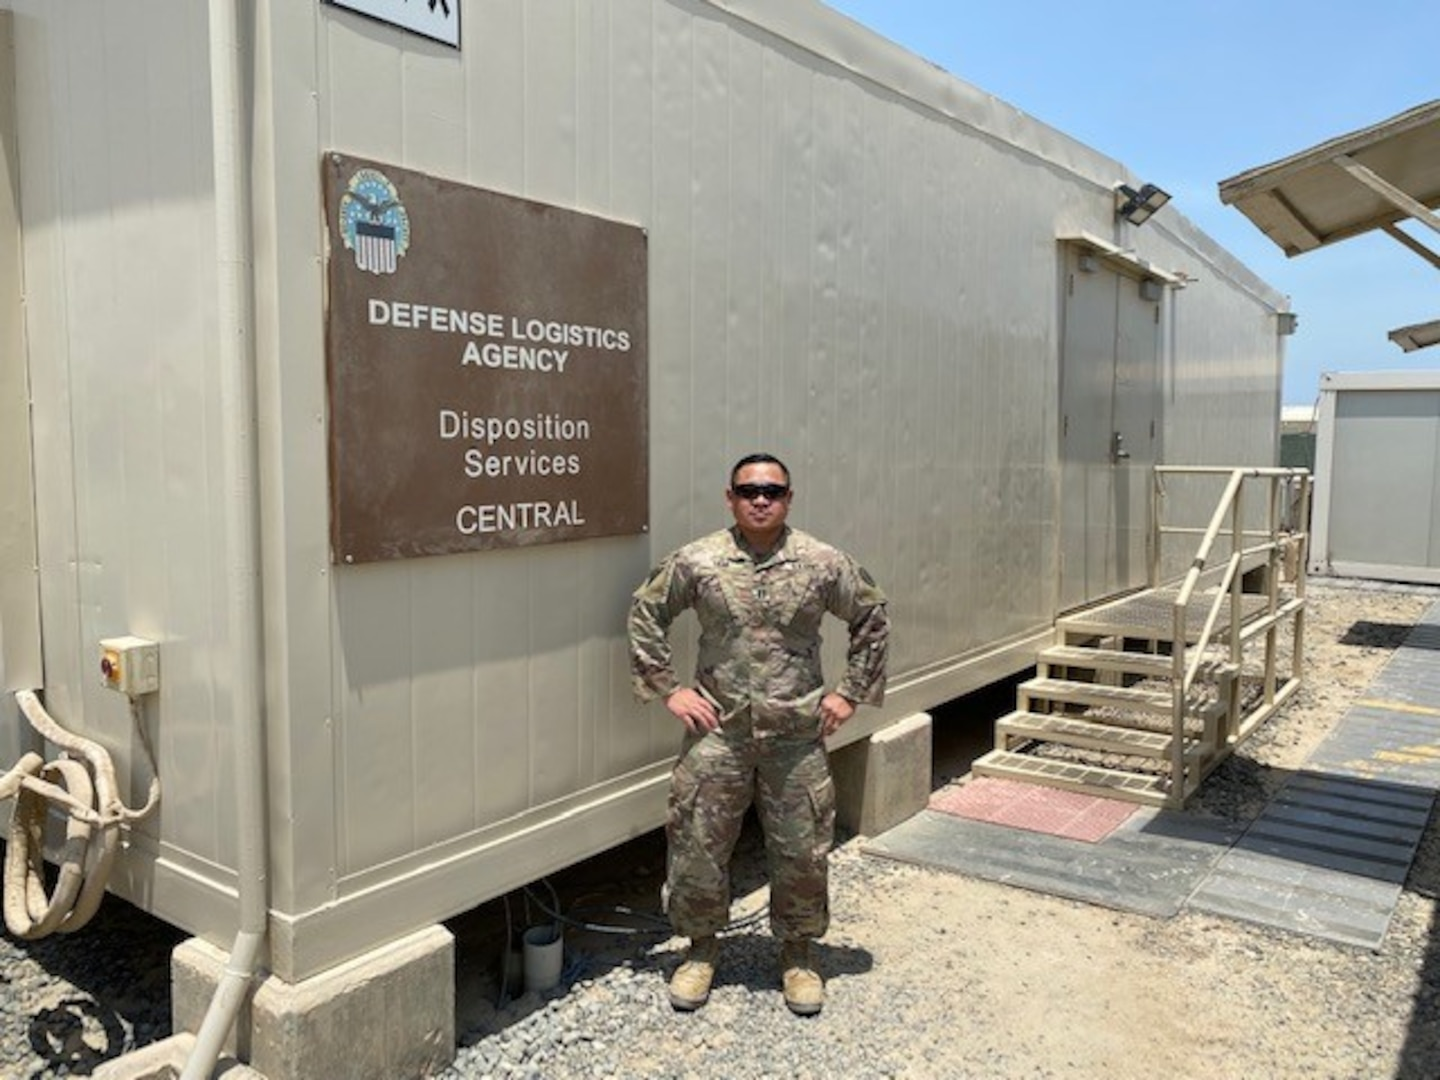 Man stands by DLA sign